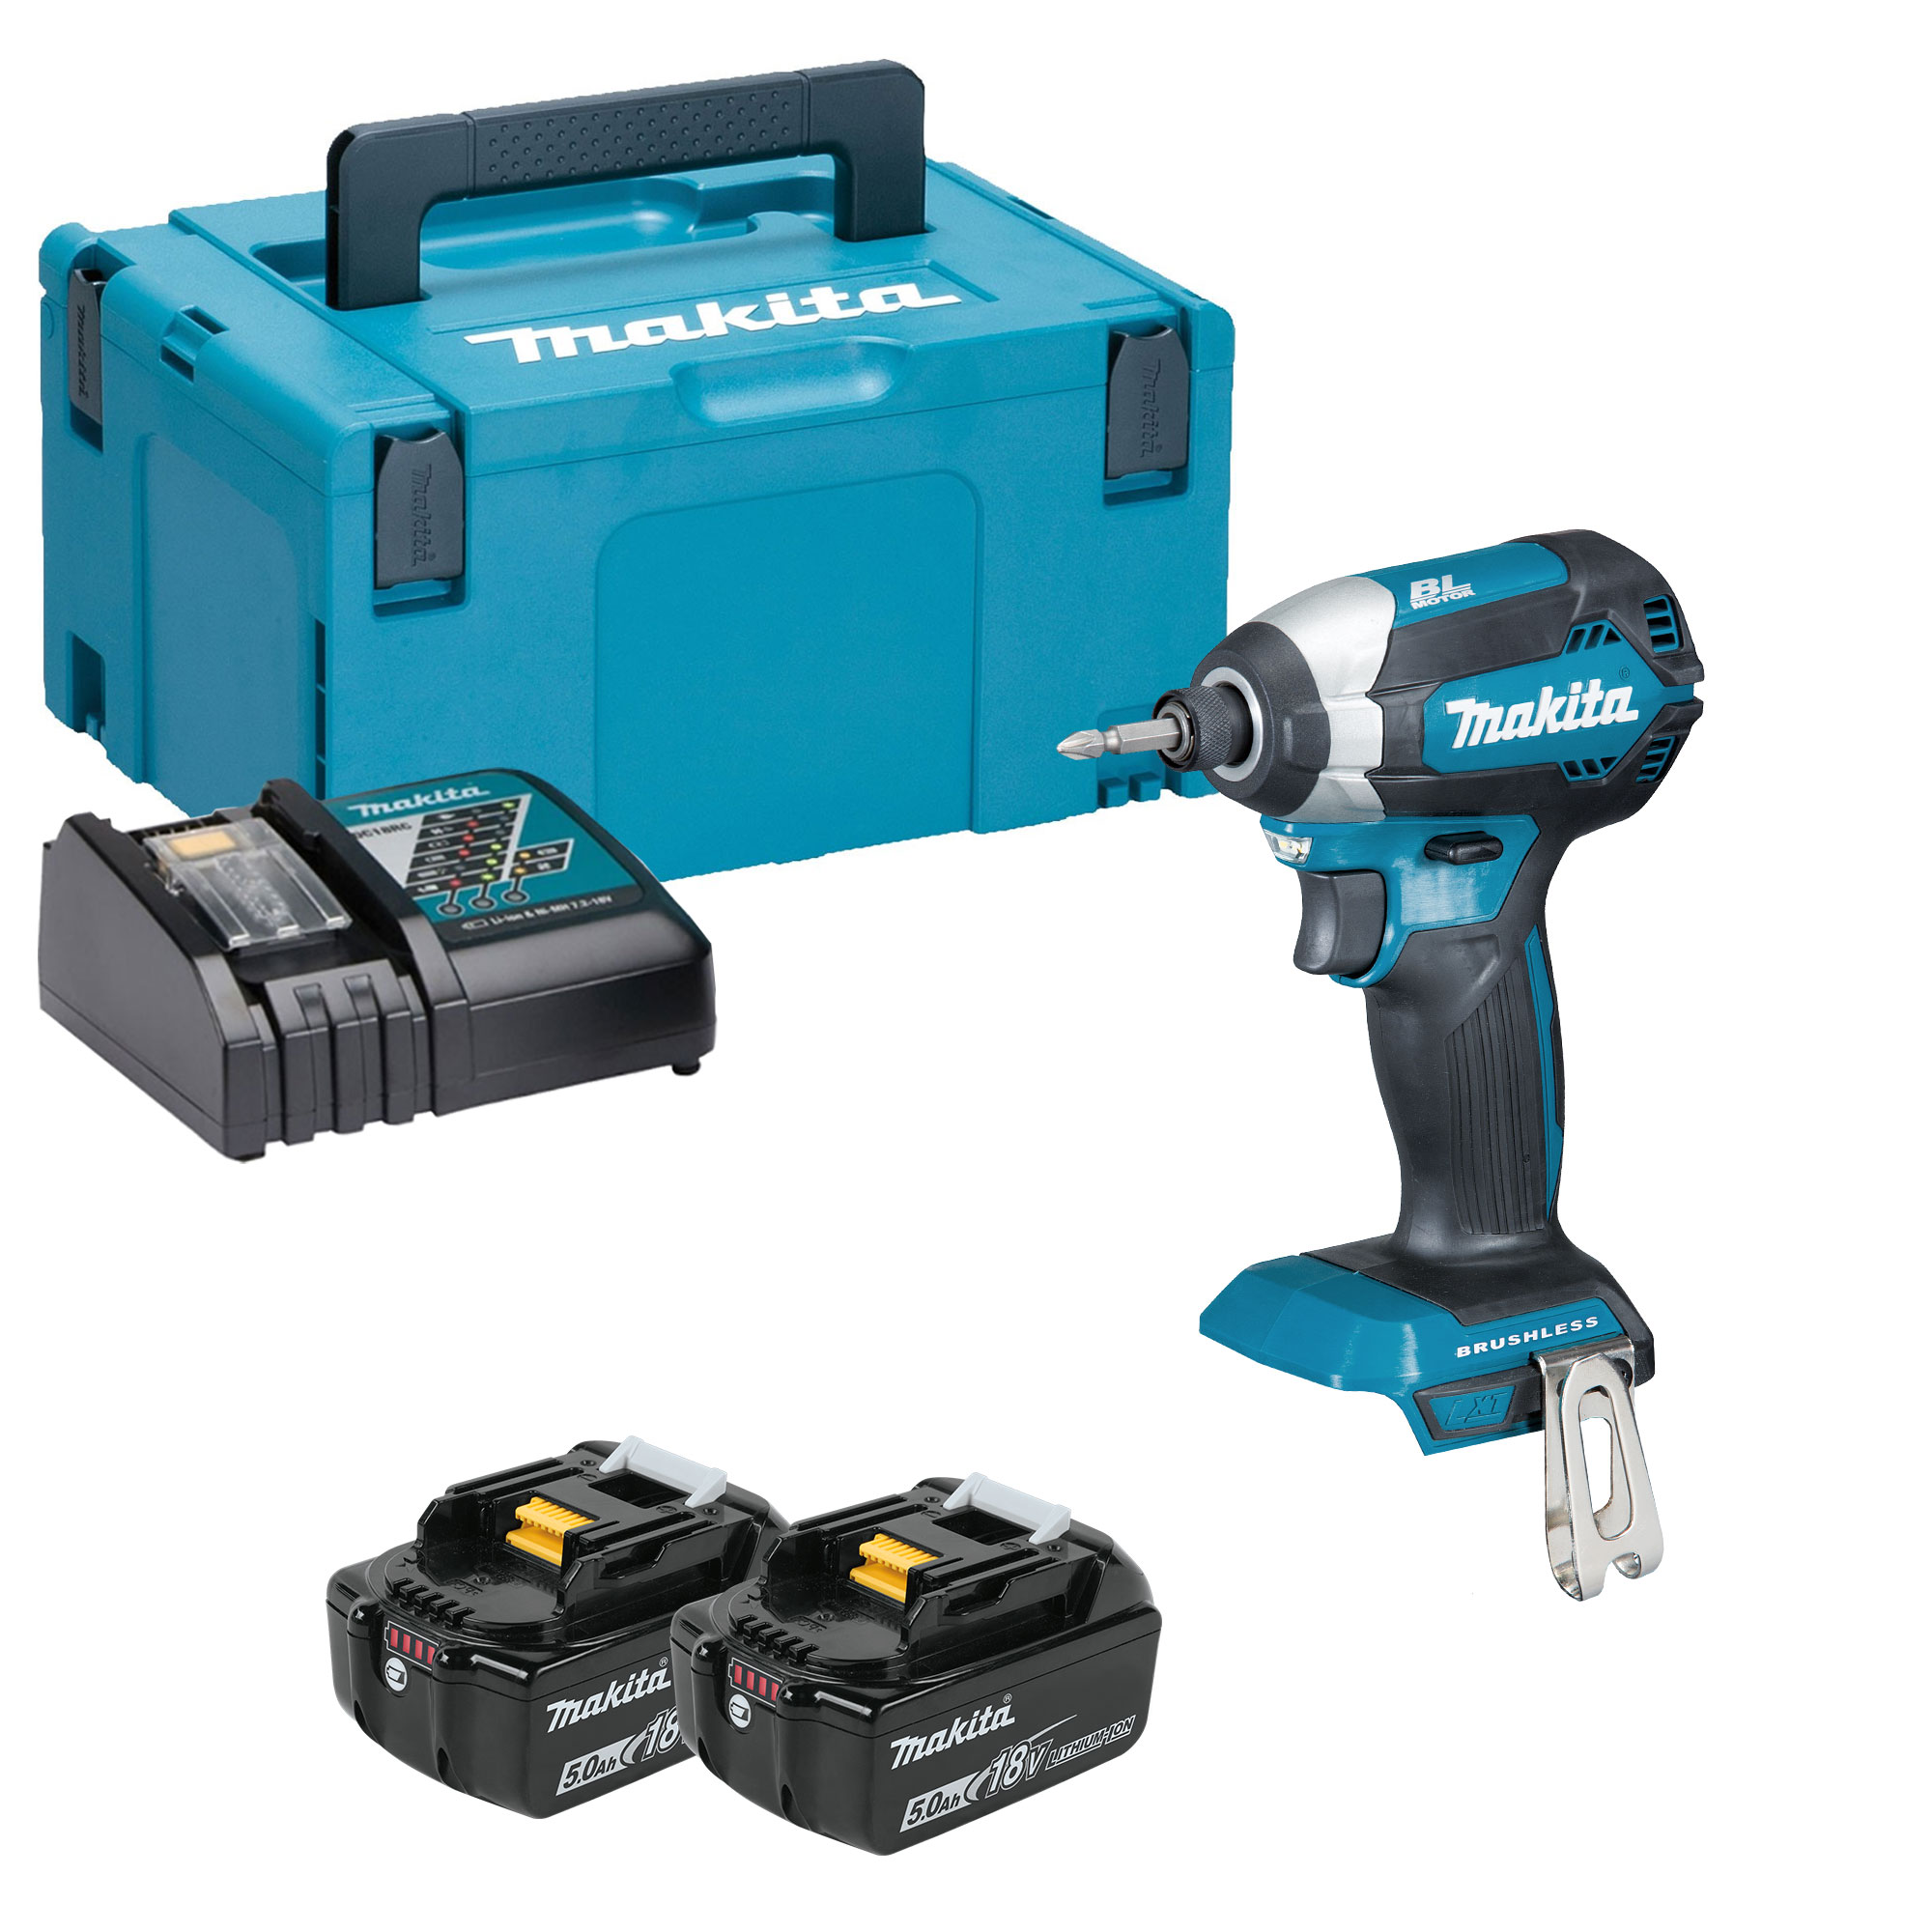 makita dtd153rtj makita 18v li ion 5 0ah cordless brushless impact driver. Black Bedroom Furniture Sets. Home Design Ideas